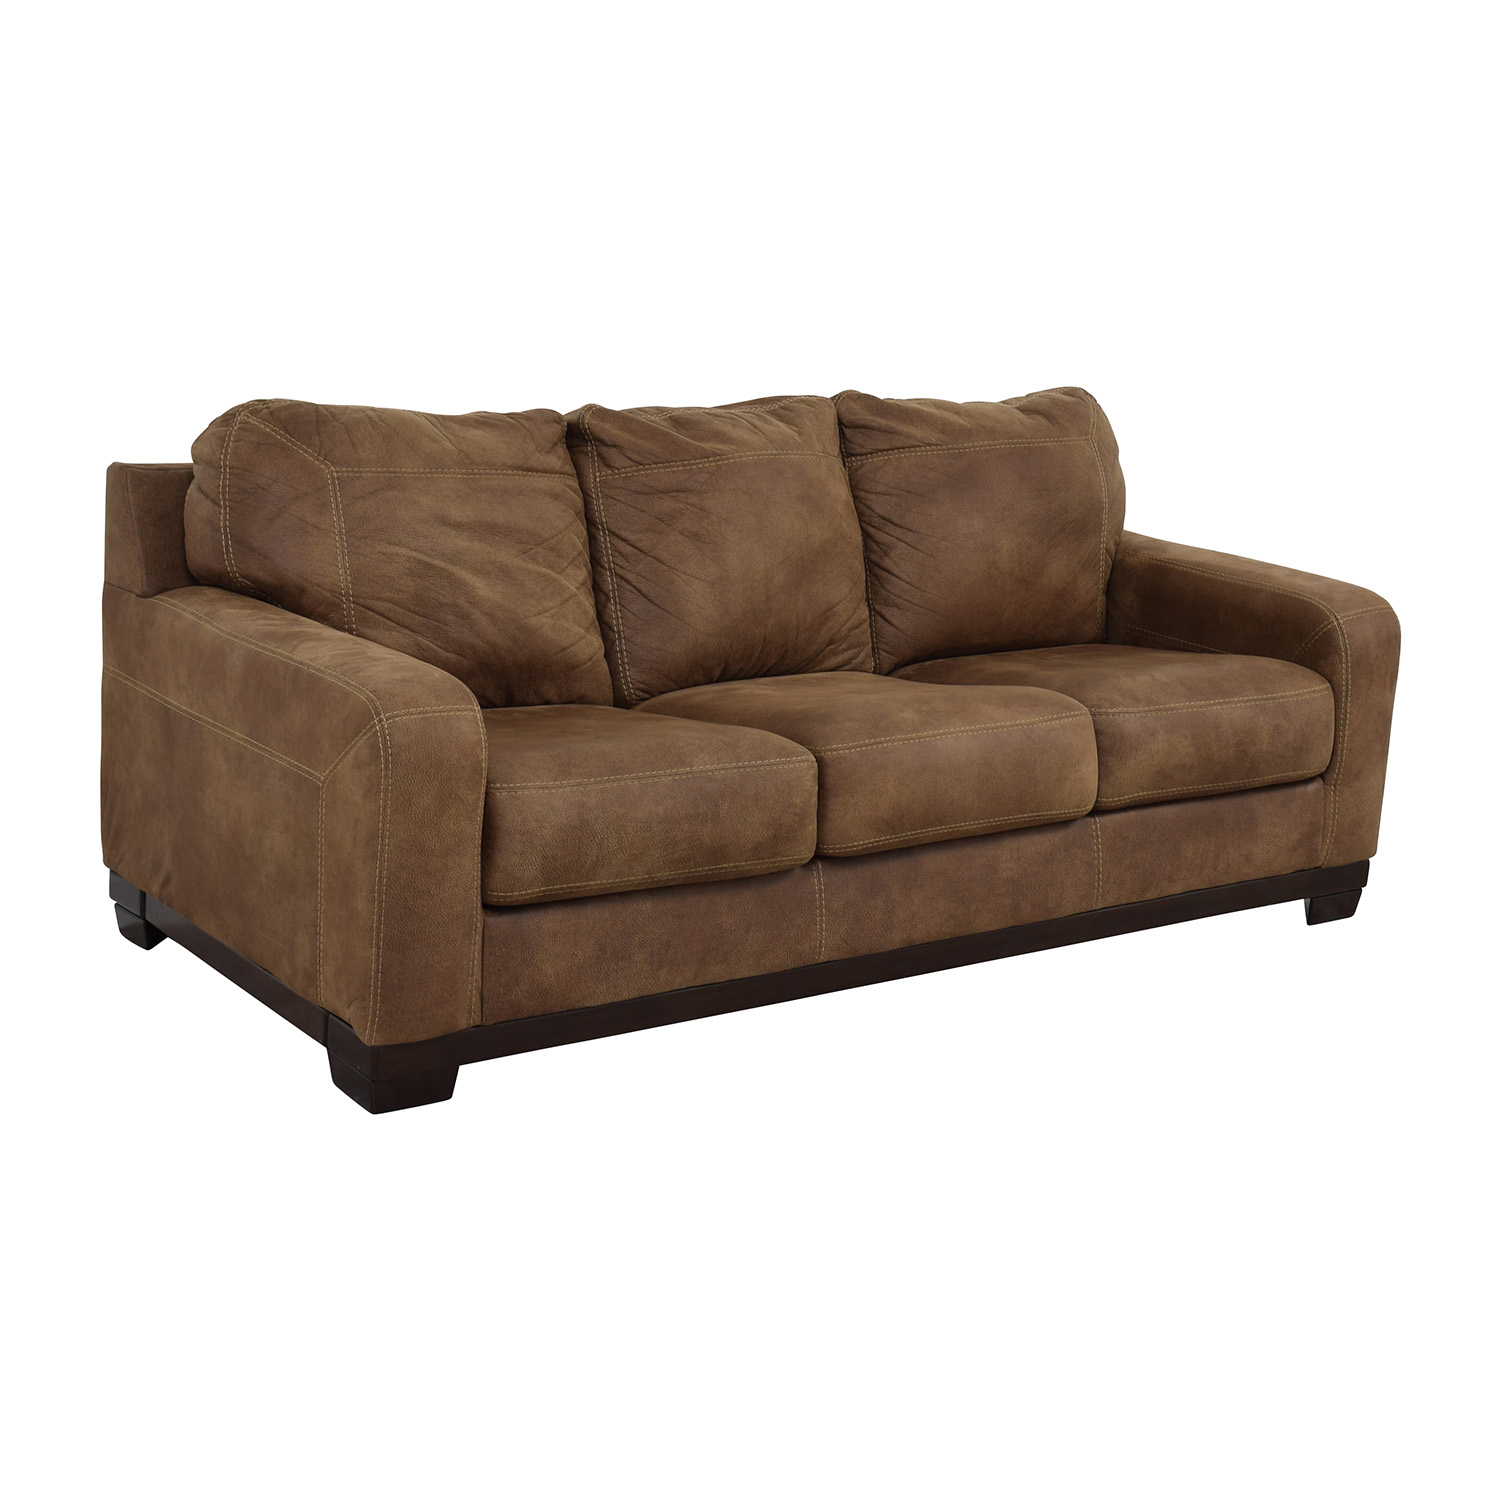 ... Buy Ashley Furniture Kylun Brown Three Cushion Couch Ashley Furniture  Sofas ...